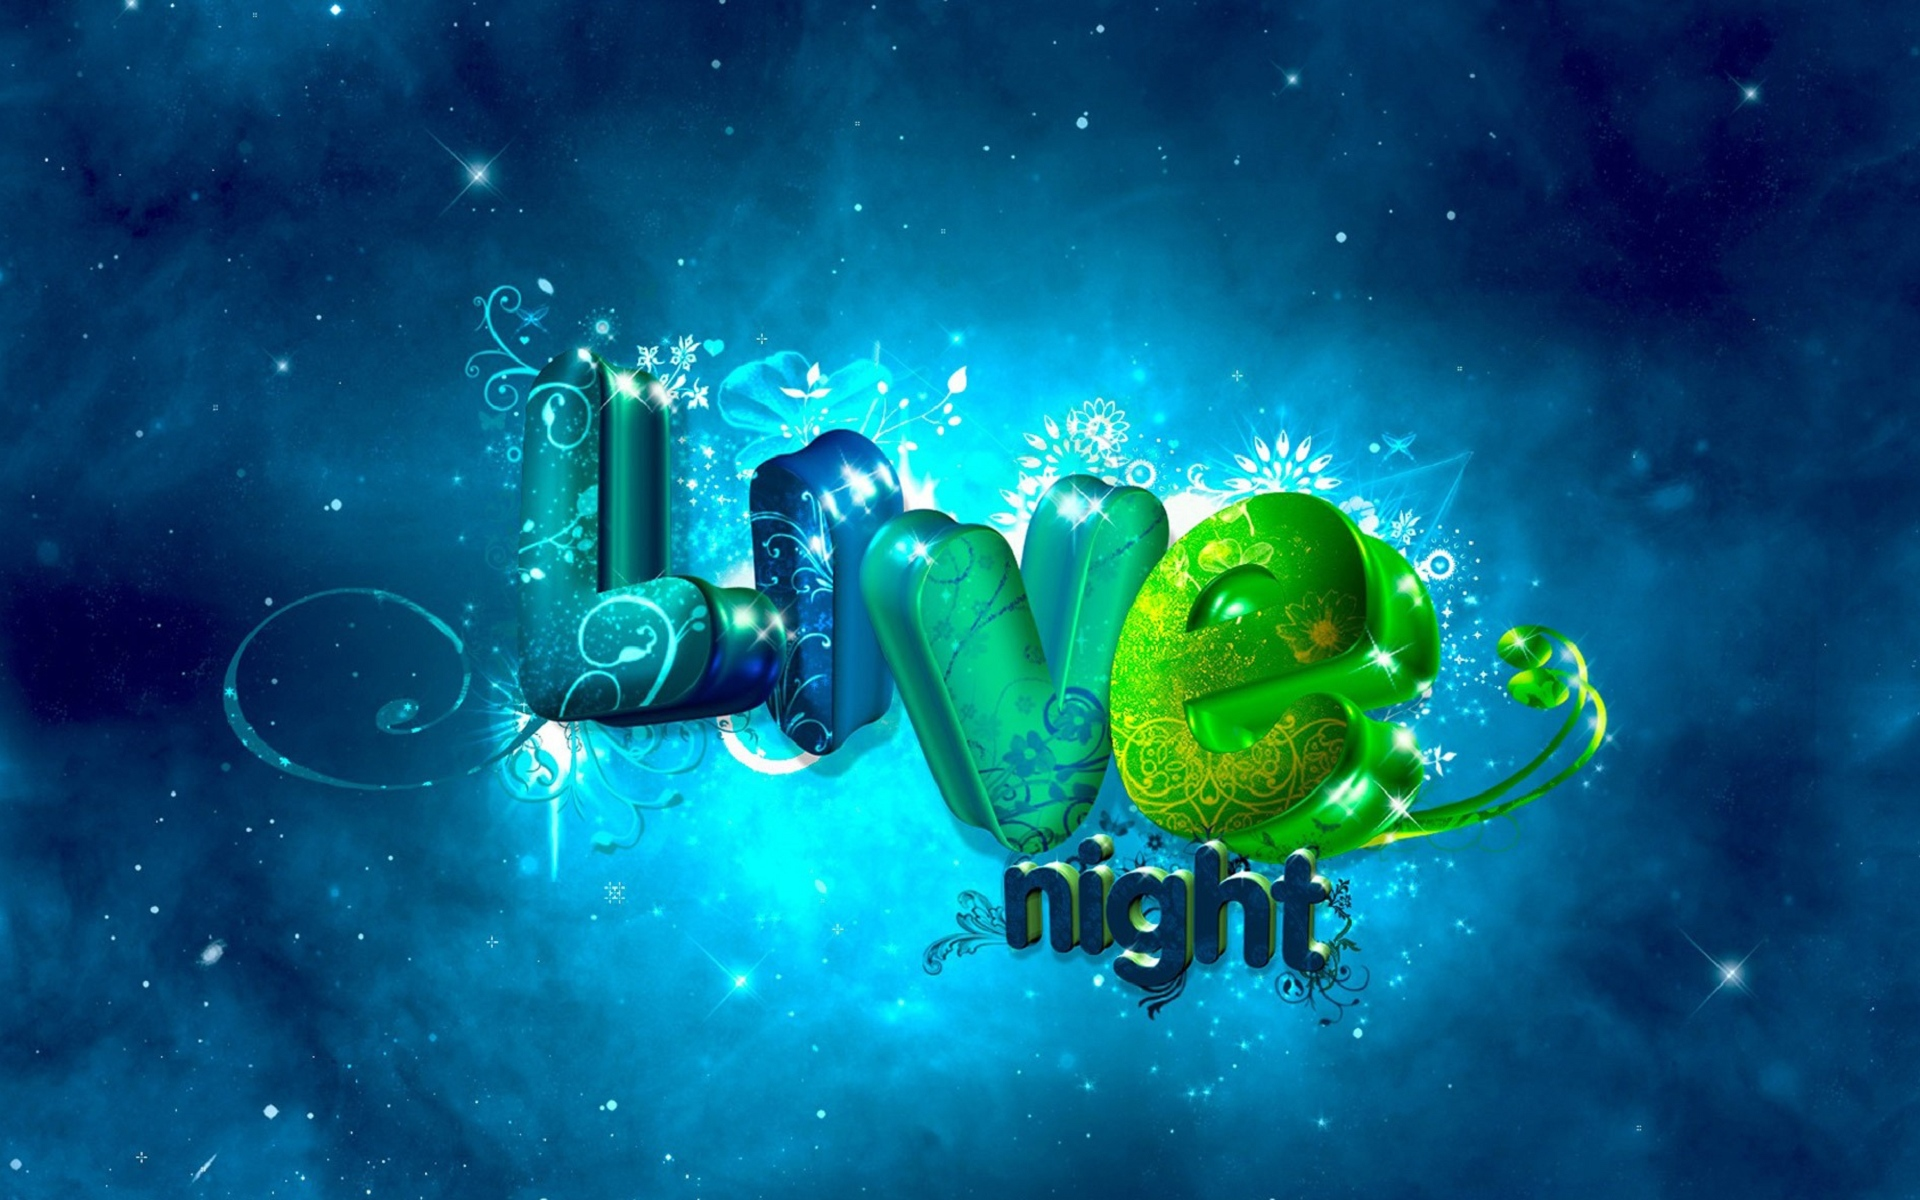 Live Night Wallpapers HD Wallpapers 1920x1200